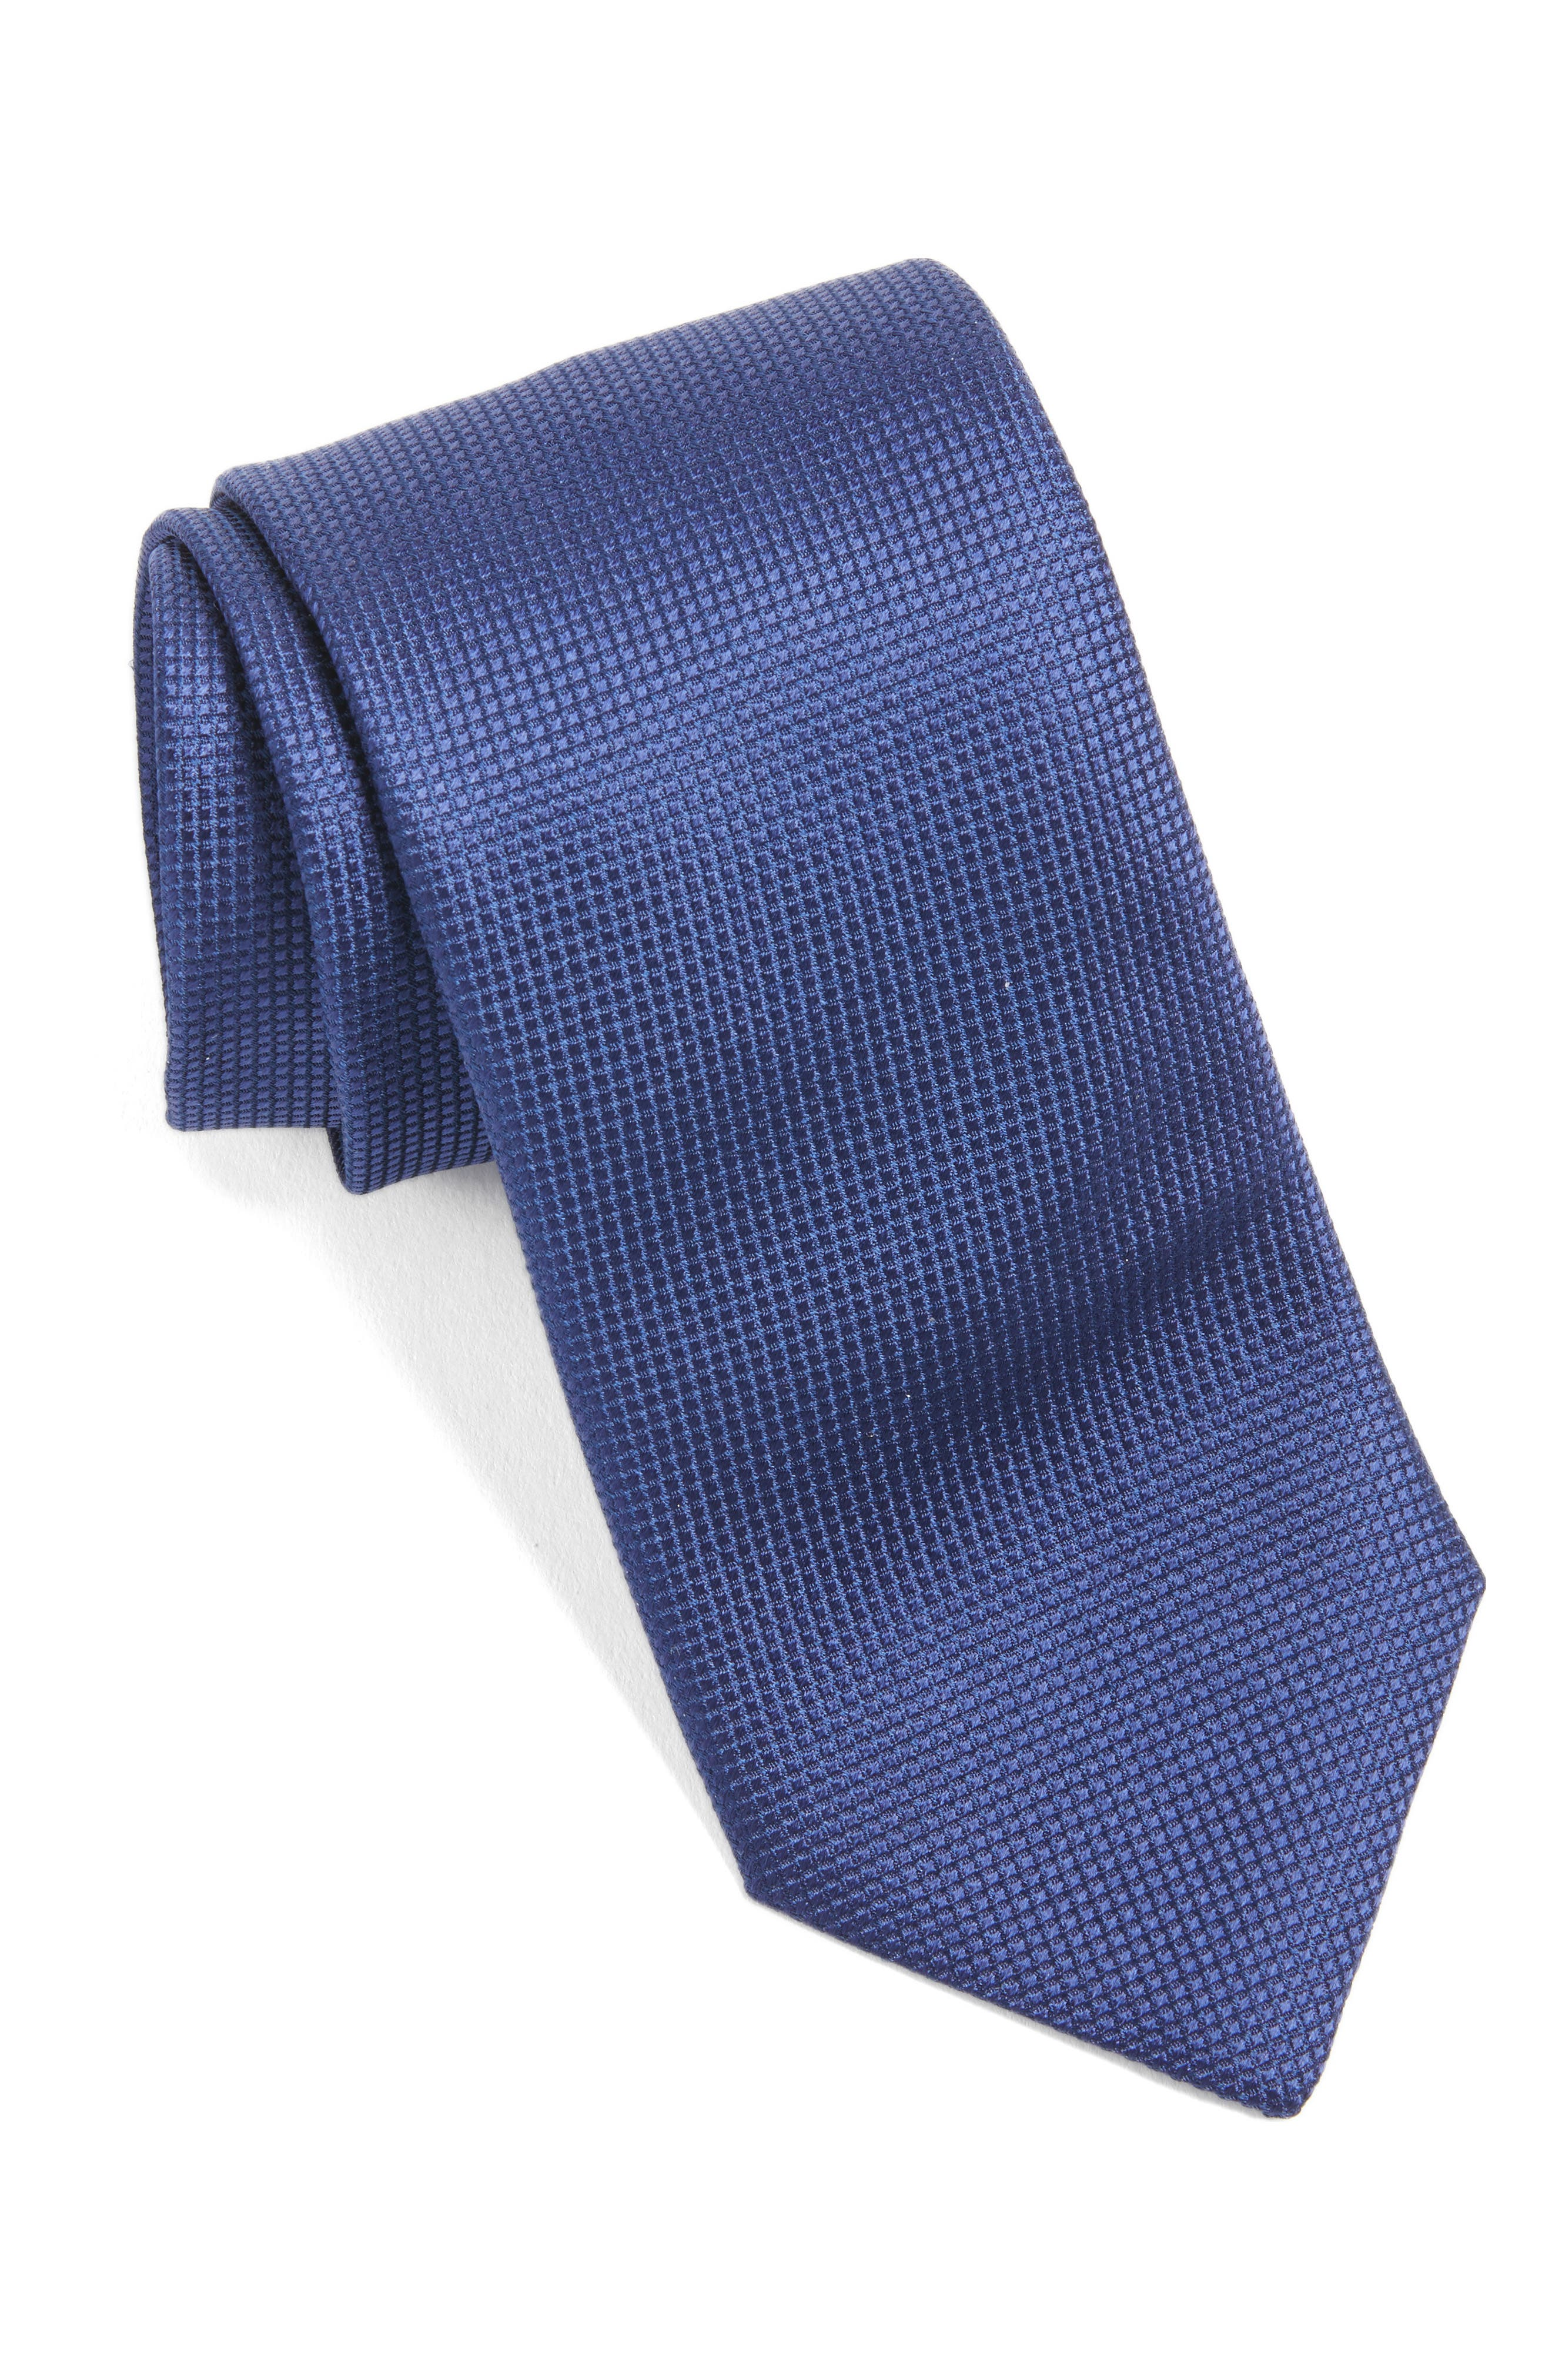 Solid Silk Tie,                             Main thumbnail 1, color,                             401